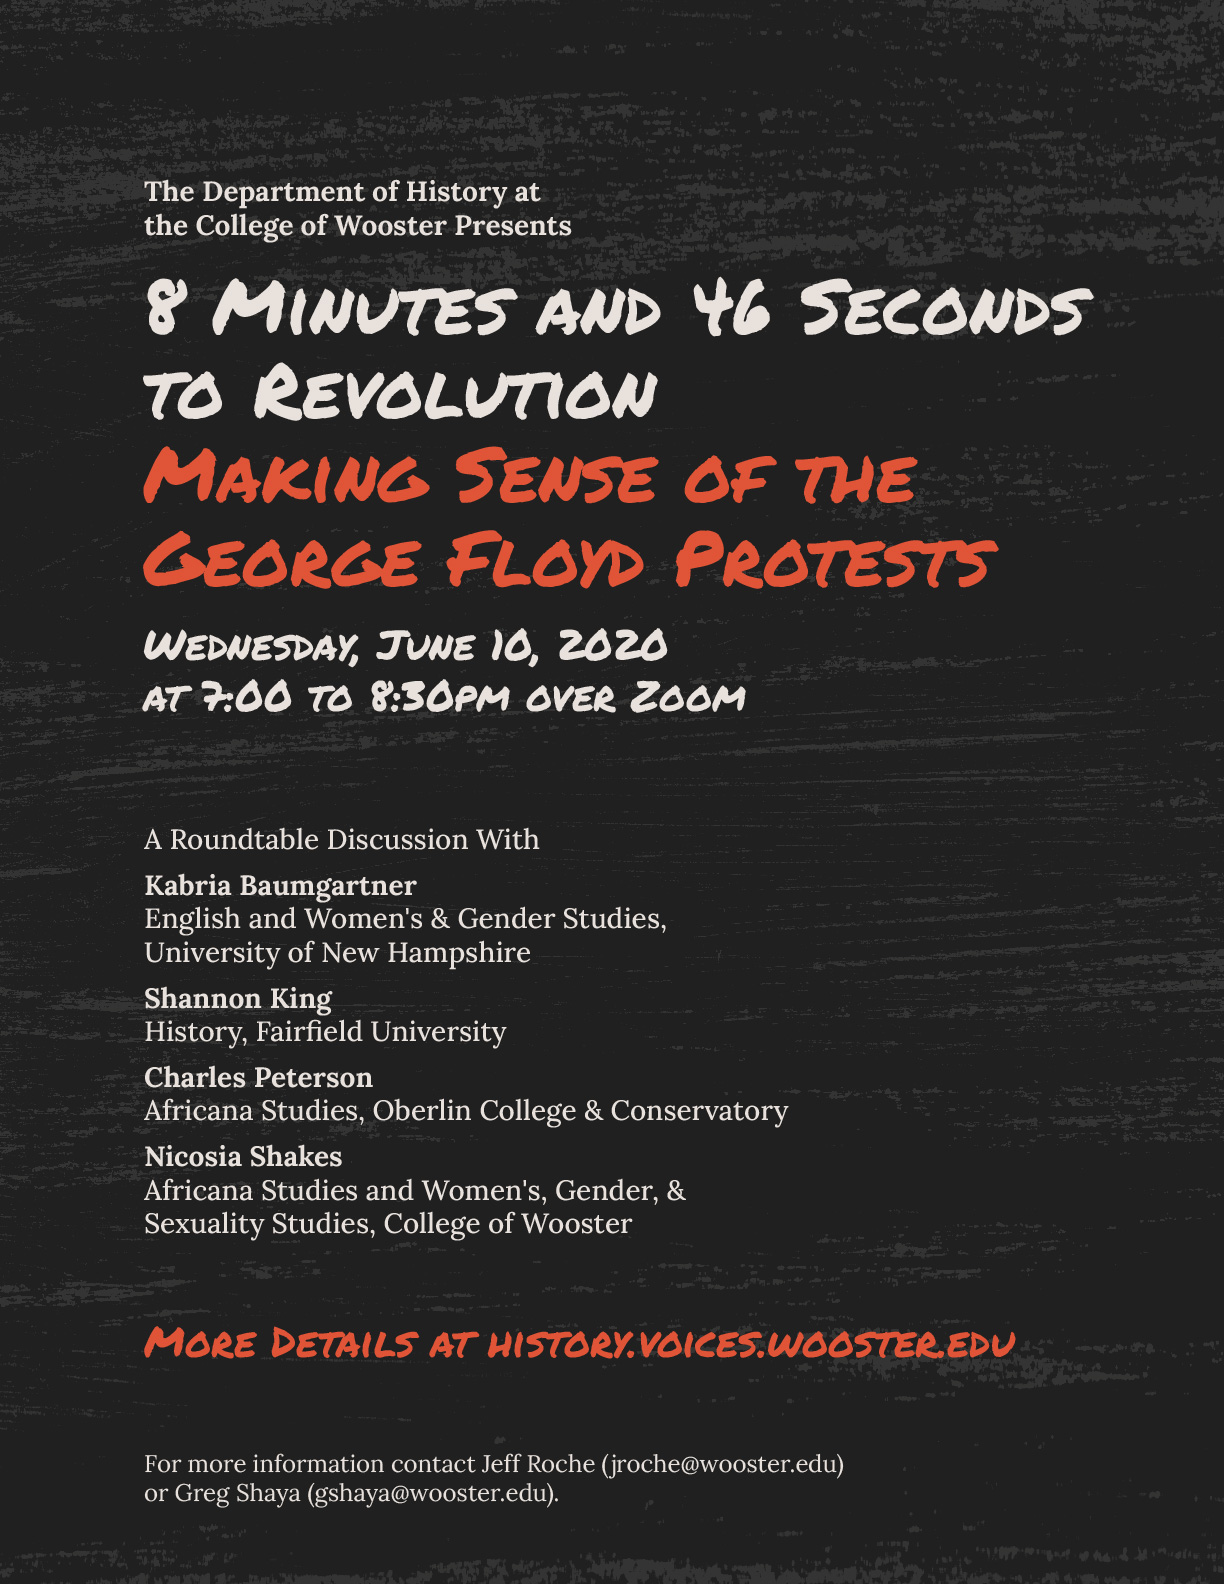 Poster for Roundtable